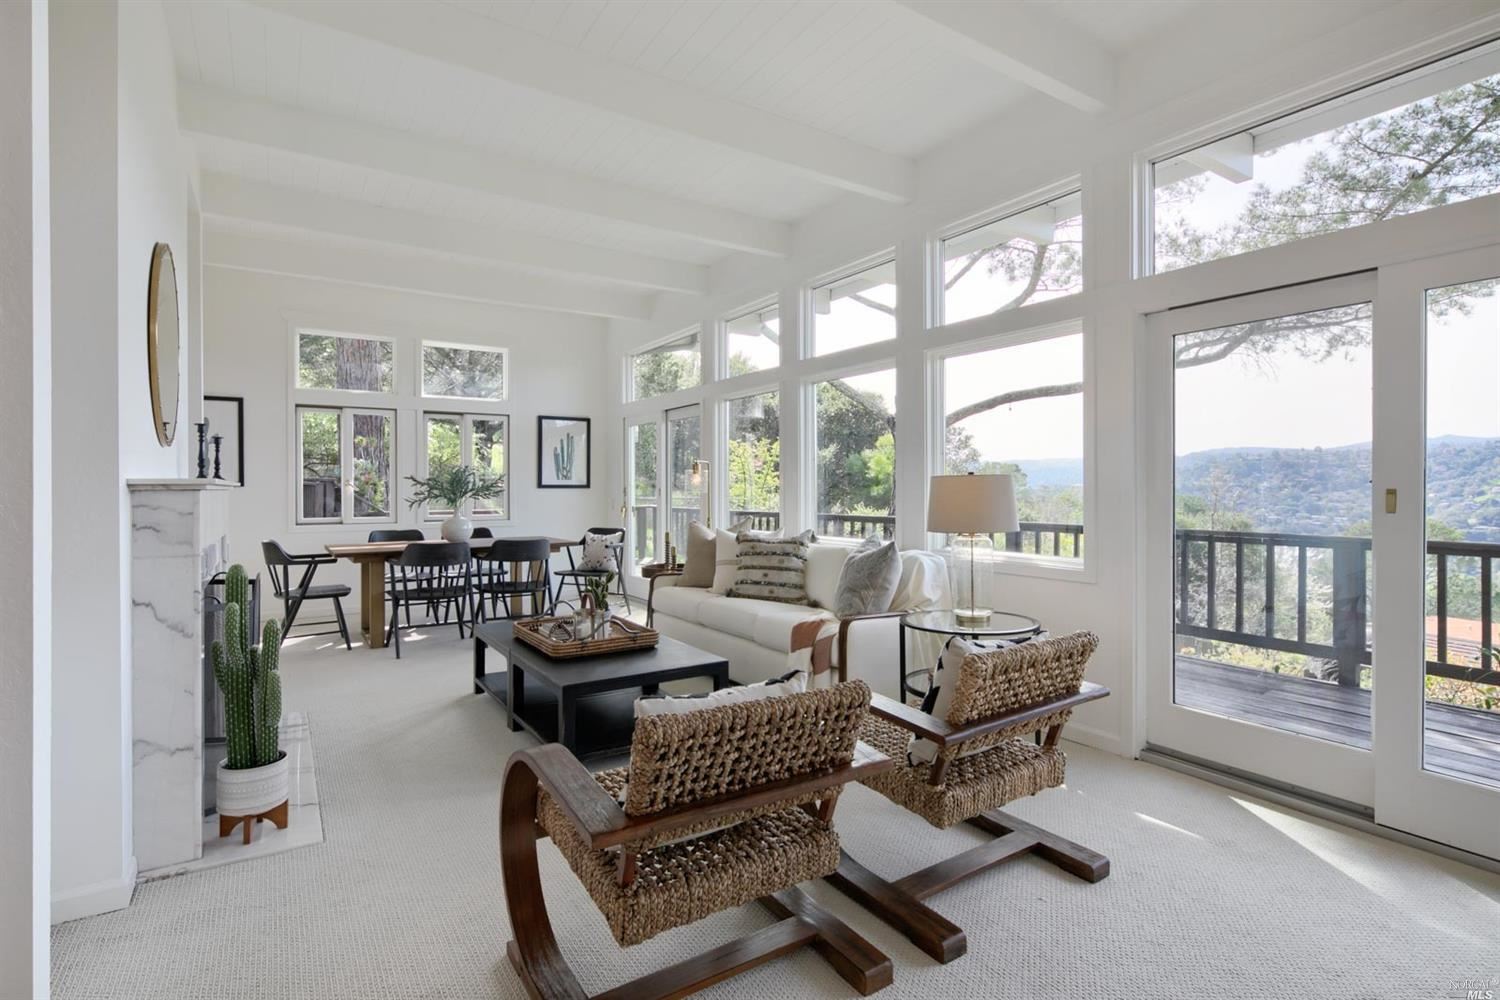 15 Fox Lane, San Anselmo, CA 94960 - MLS#: 321009910